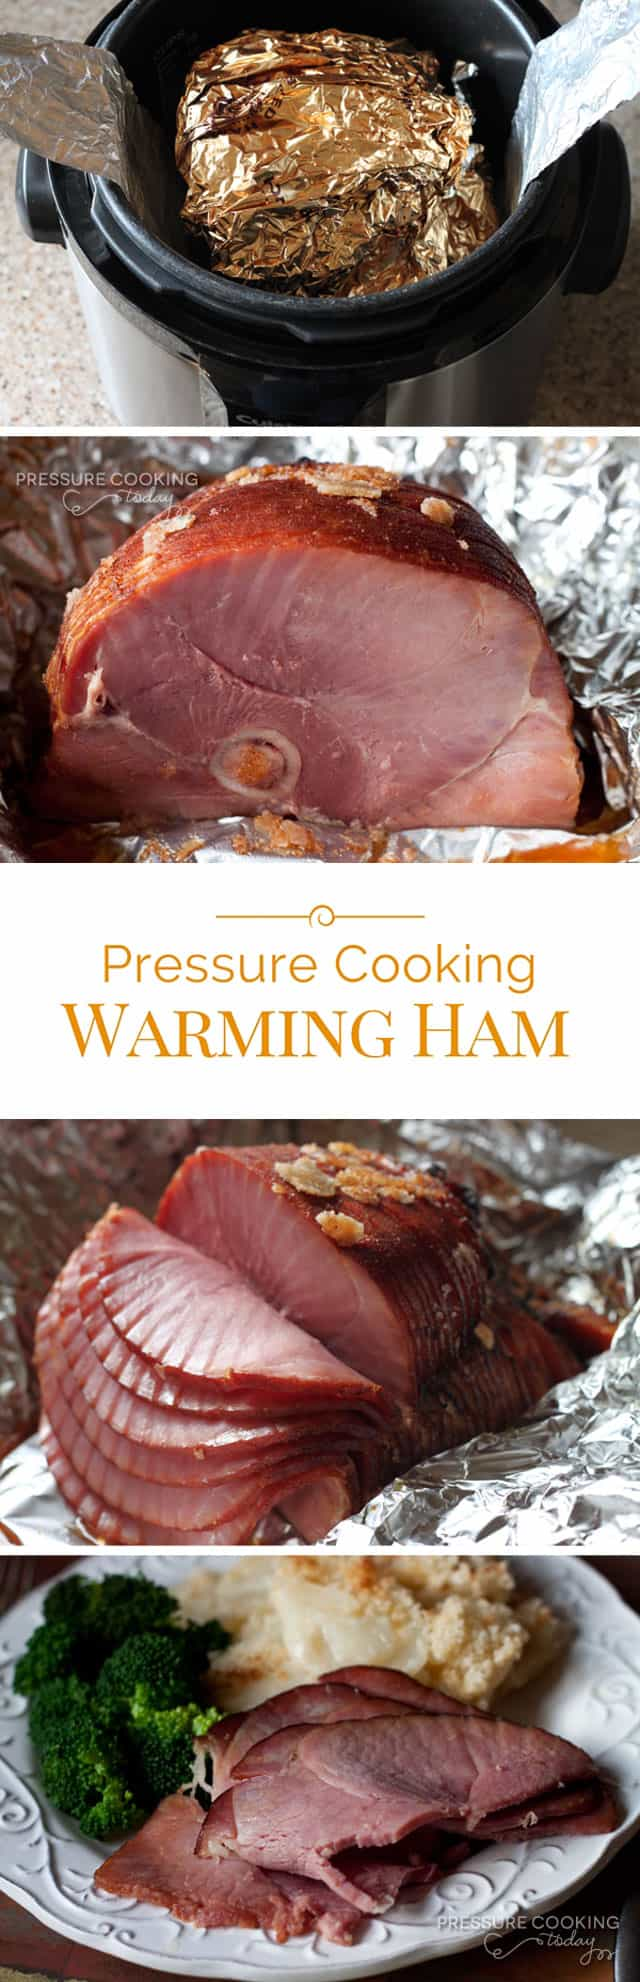 heating ham slices in the pressure cooker (instant pot)